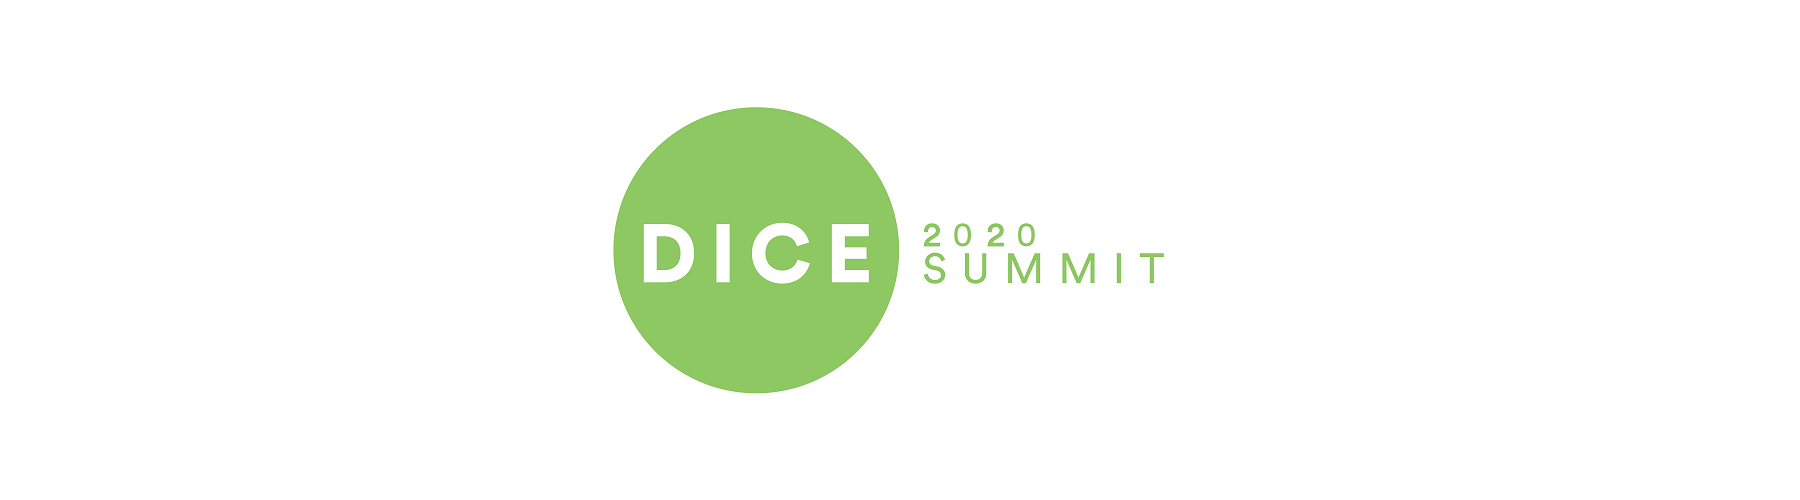 DENNIS COOPER LEADS ROUNDTABLE SESSION ON GAMES AND CLIMATE CHANGE AT D.I.C.E. SUMMIT 2020